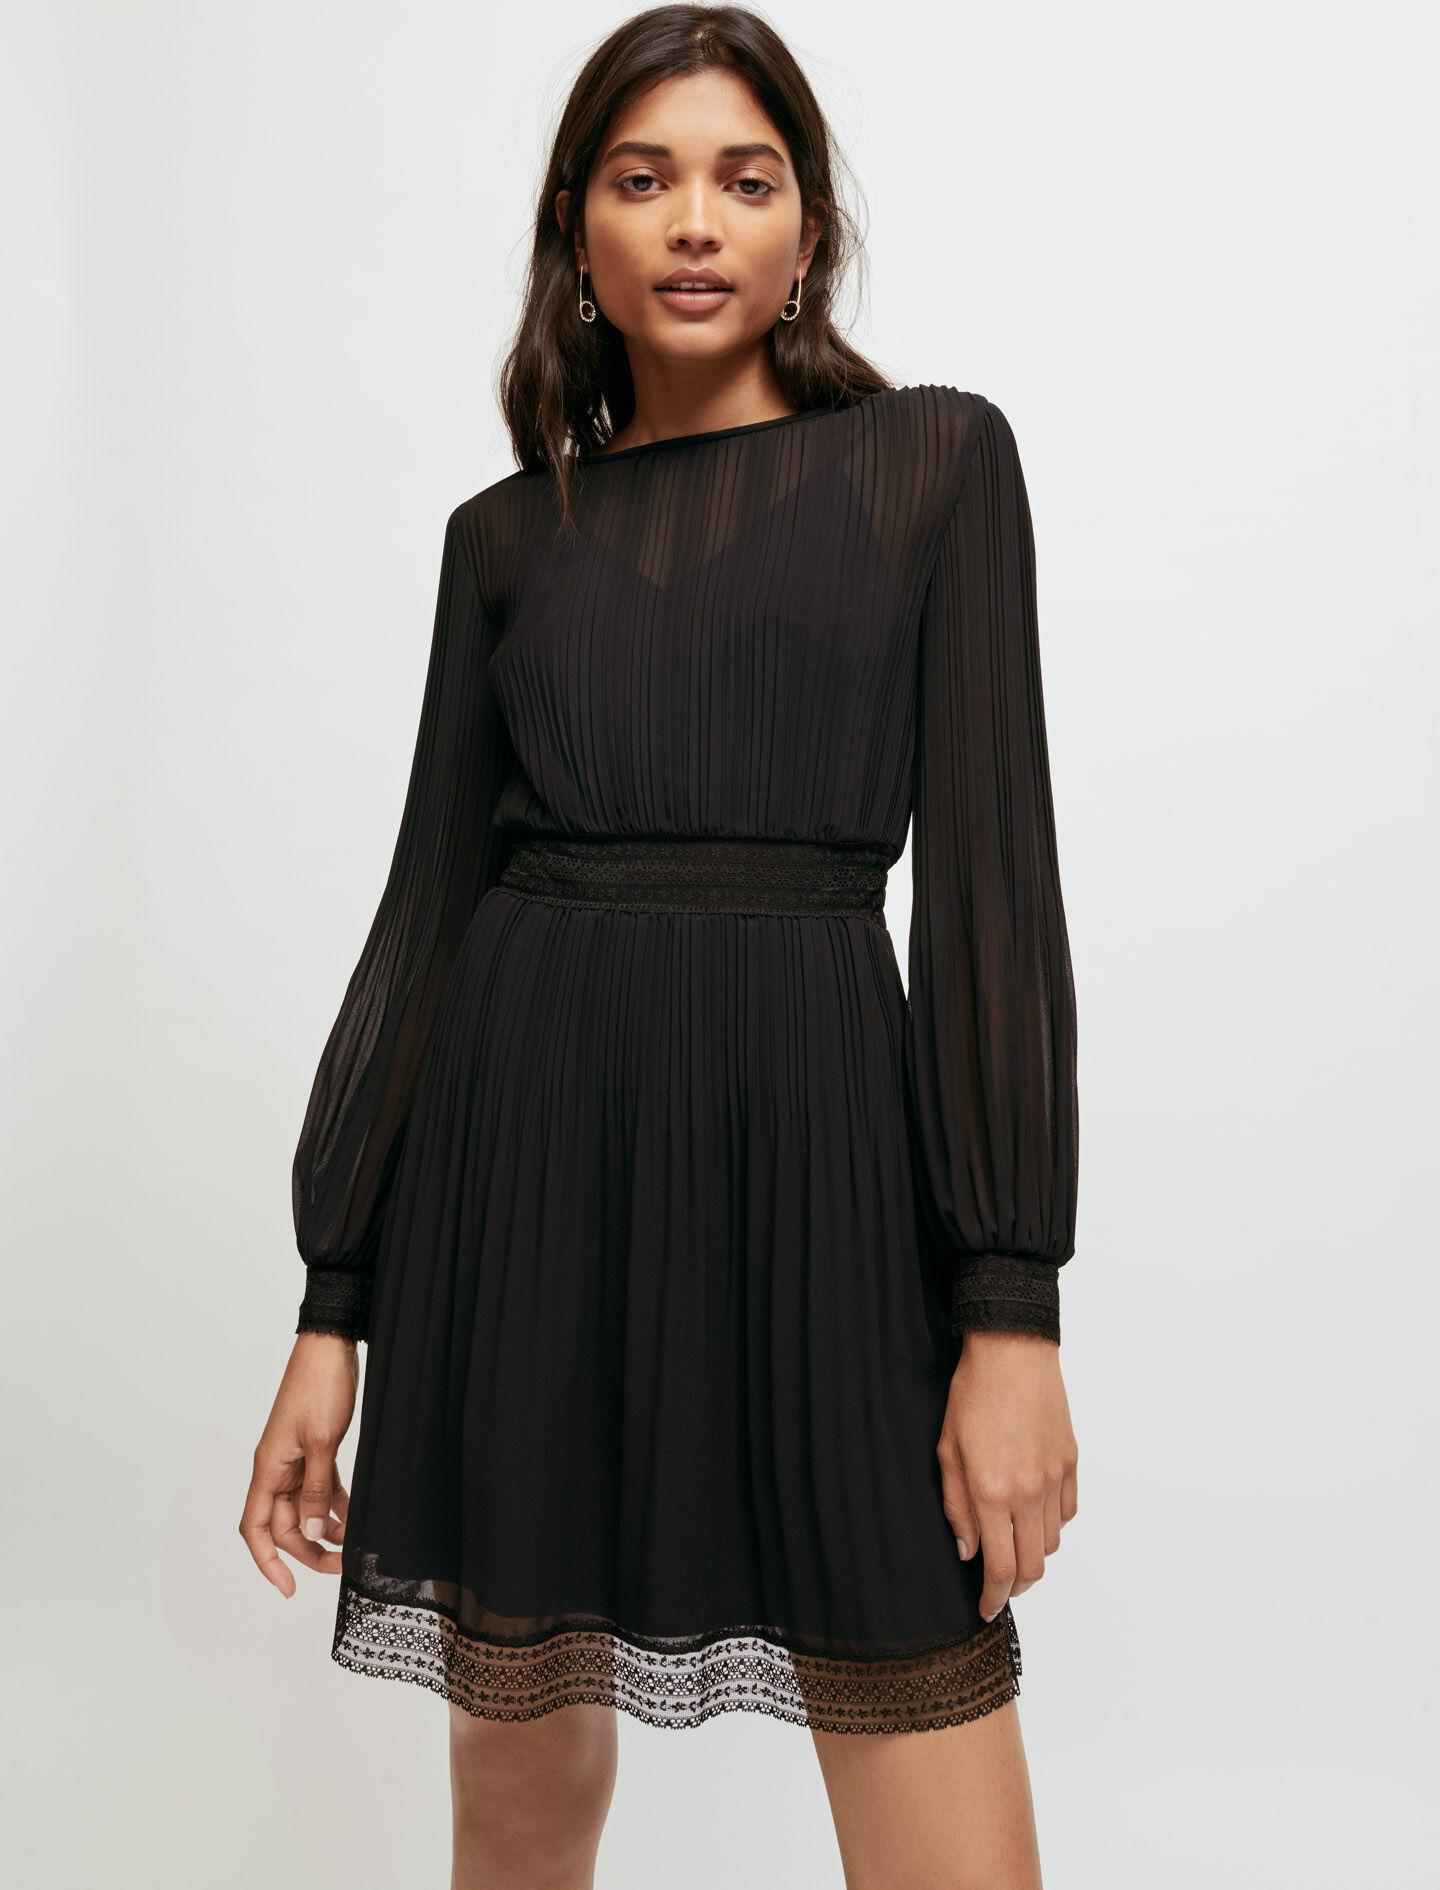 MUSLIN AND LACE SMOCKED DRESS